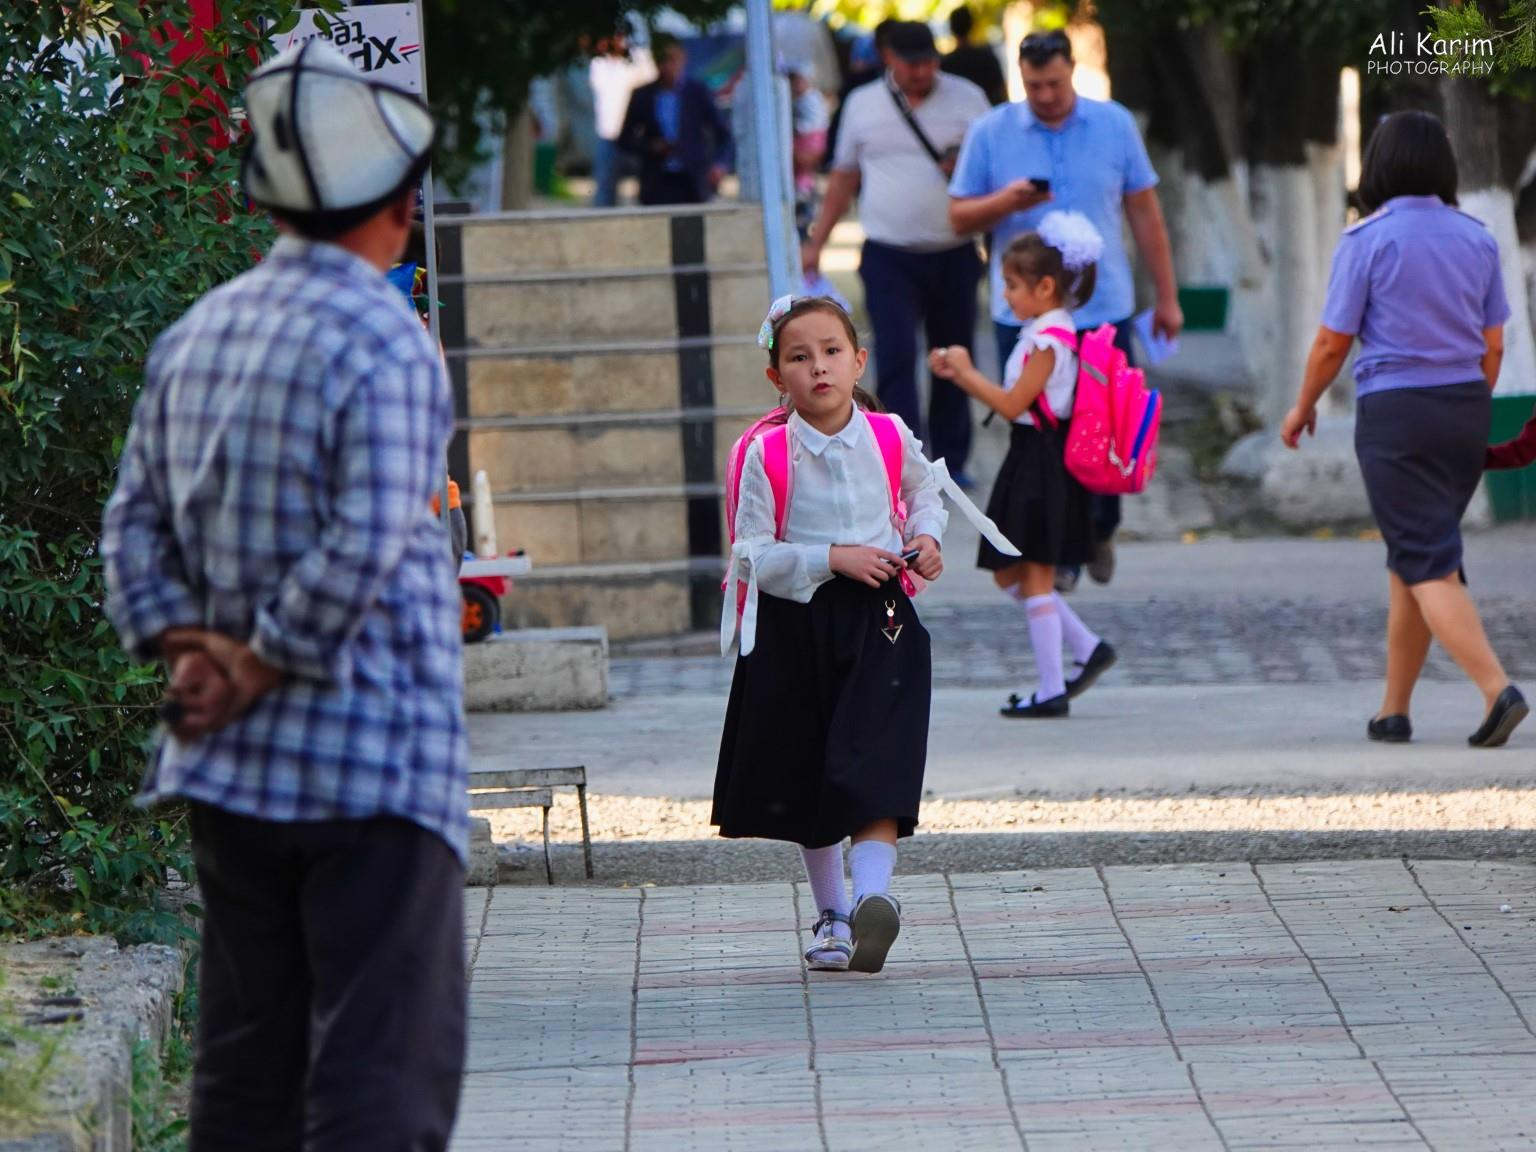 Silk Road 15: Osh, Kyrgyzstan School children walked to and from school or took the local mashrutka's (minivans that act as public transportation) quite freely on their own. Nice safe society